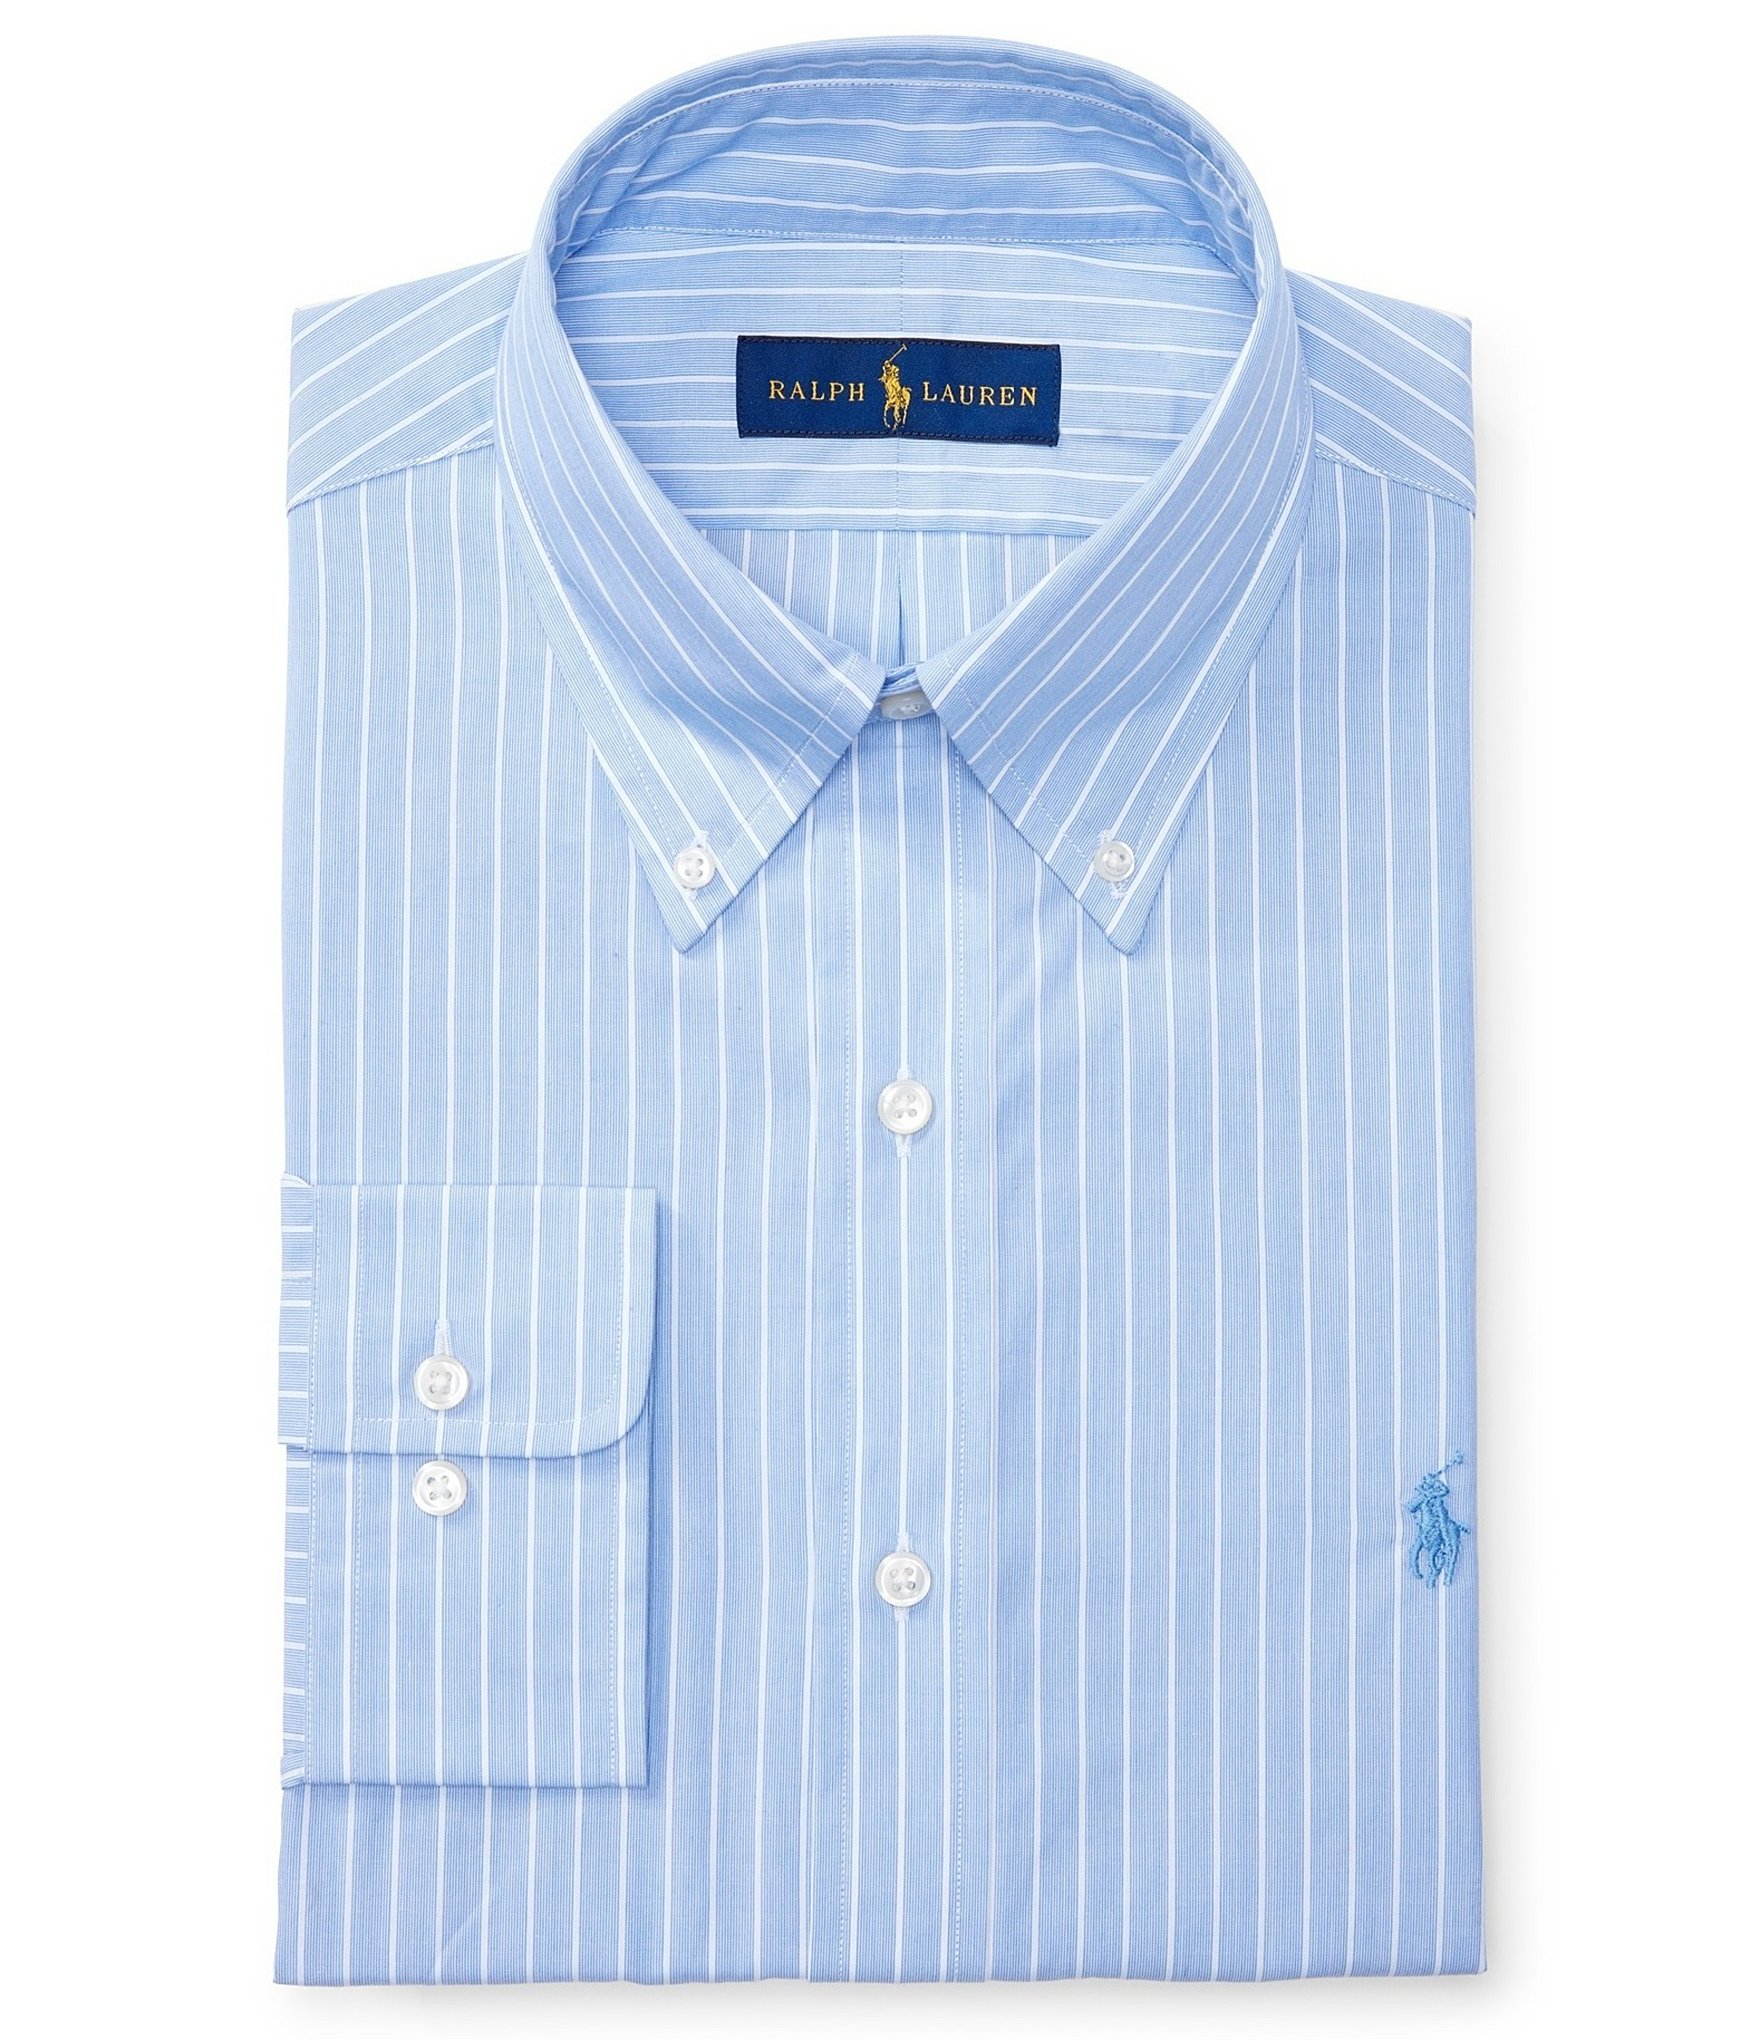 Polo ralph lauren striped fitted classic fit button down for Button down collar dress shirts